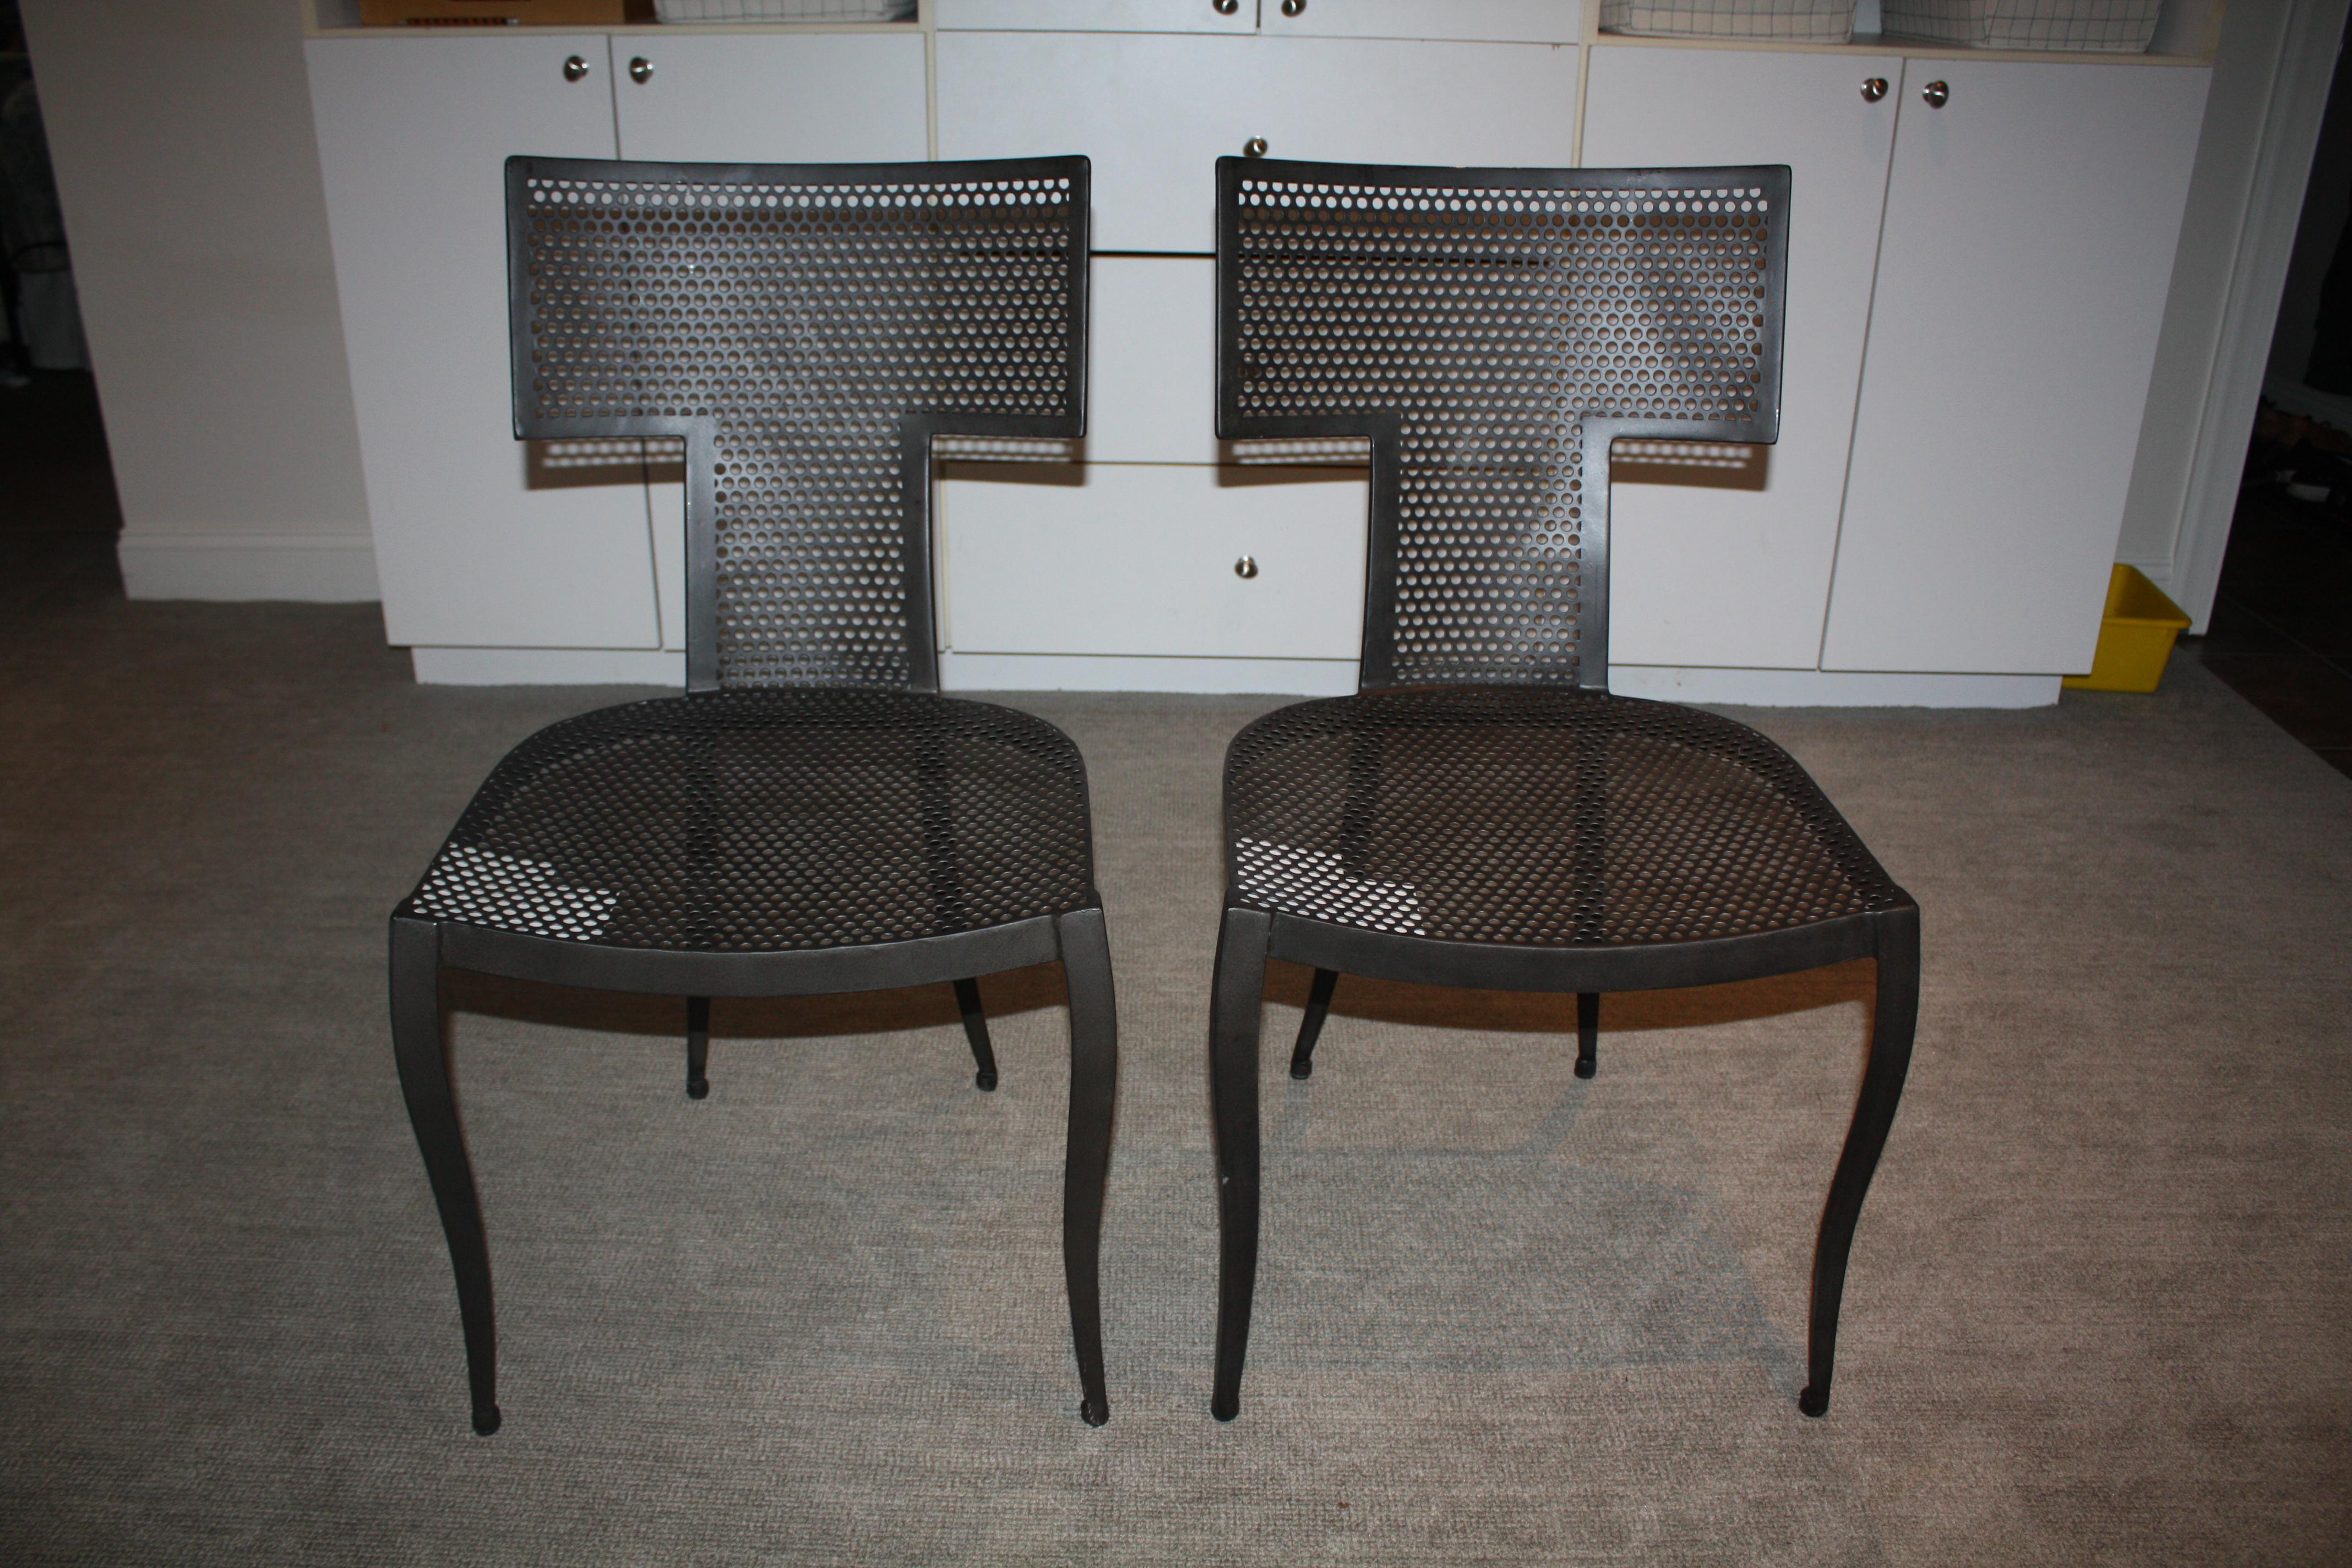 Modern Black Made Goods Hadley Chair    An Indoor/Outdoor Chair   Image